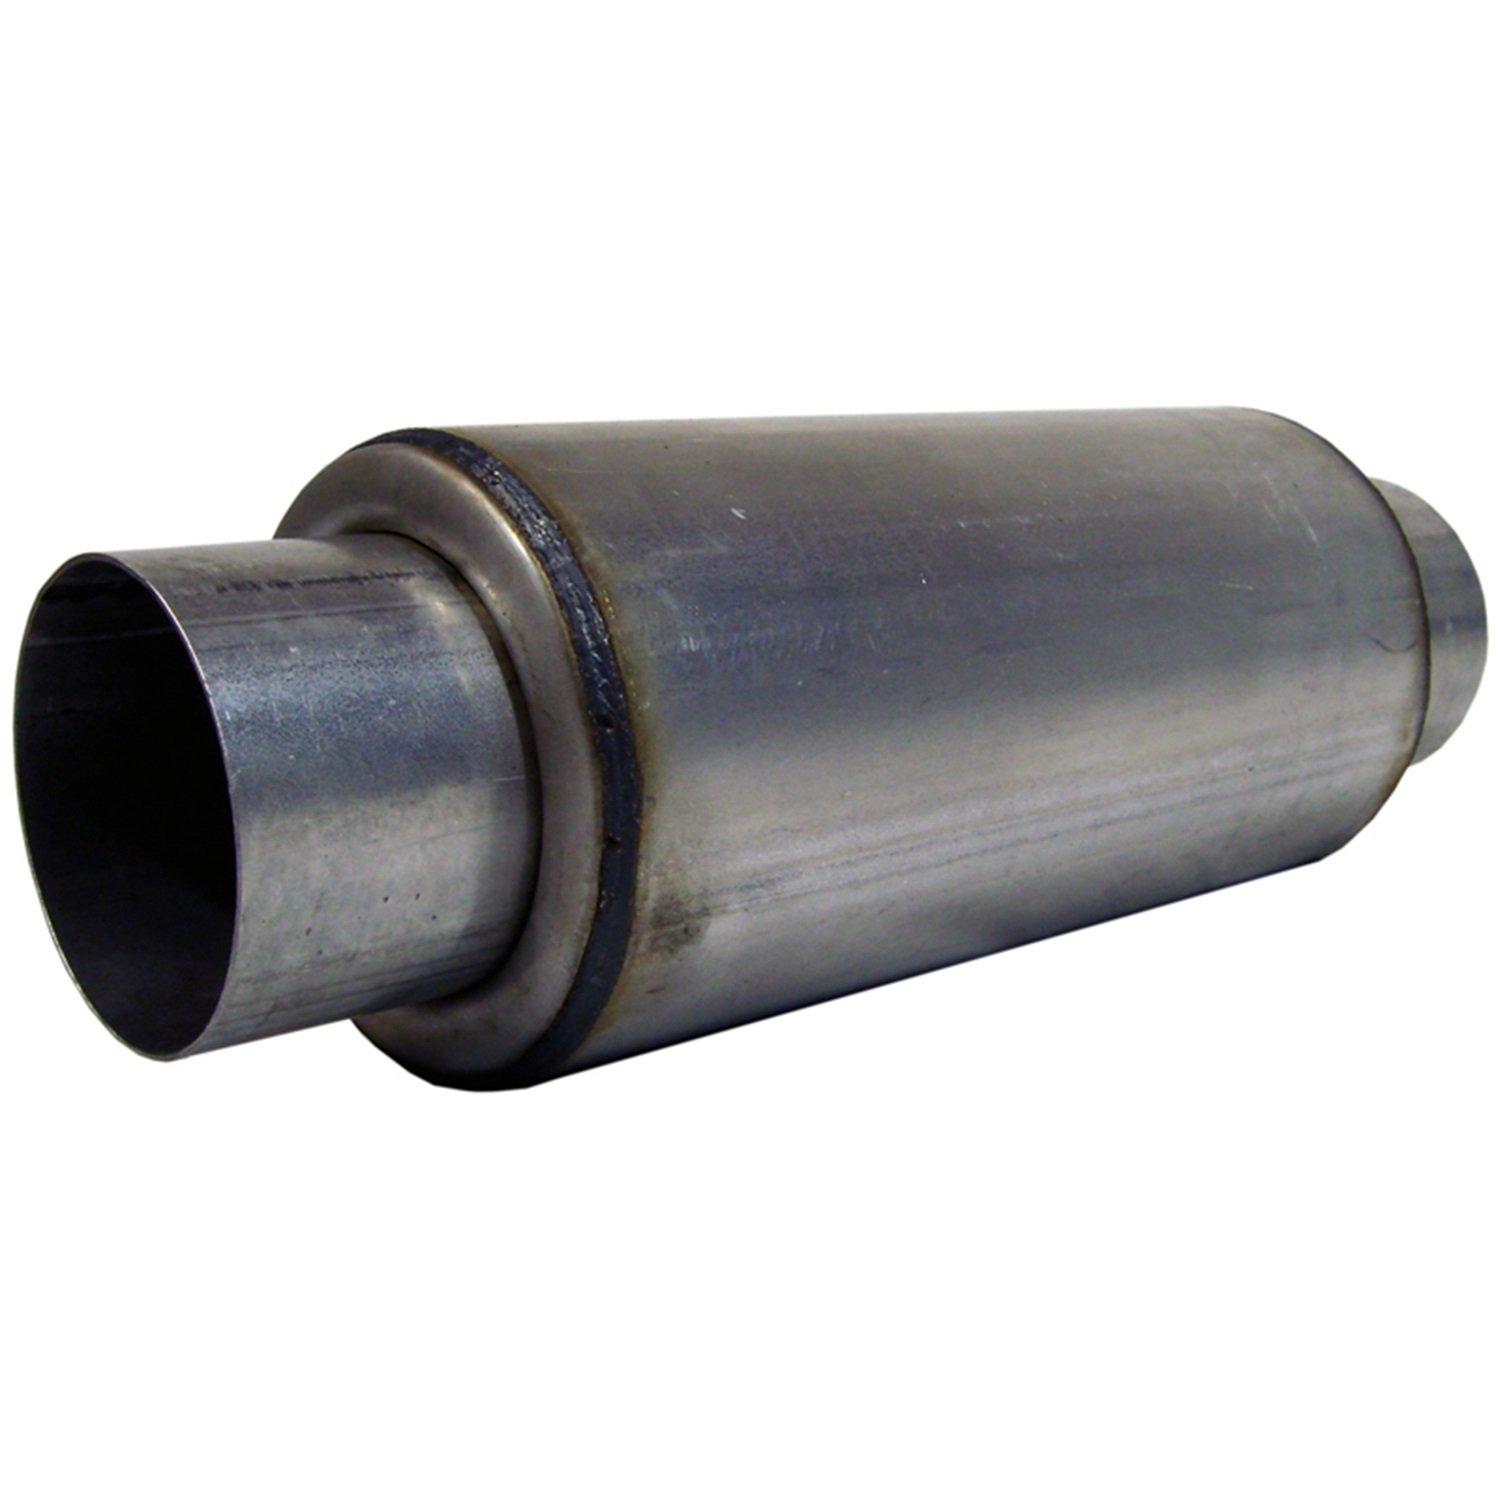 MBRP R1009 18' T304 Stainless Resonator MBRP Exhaust